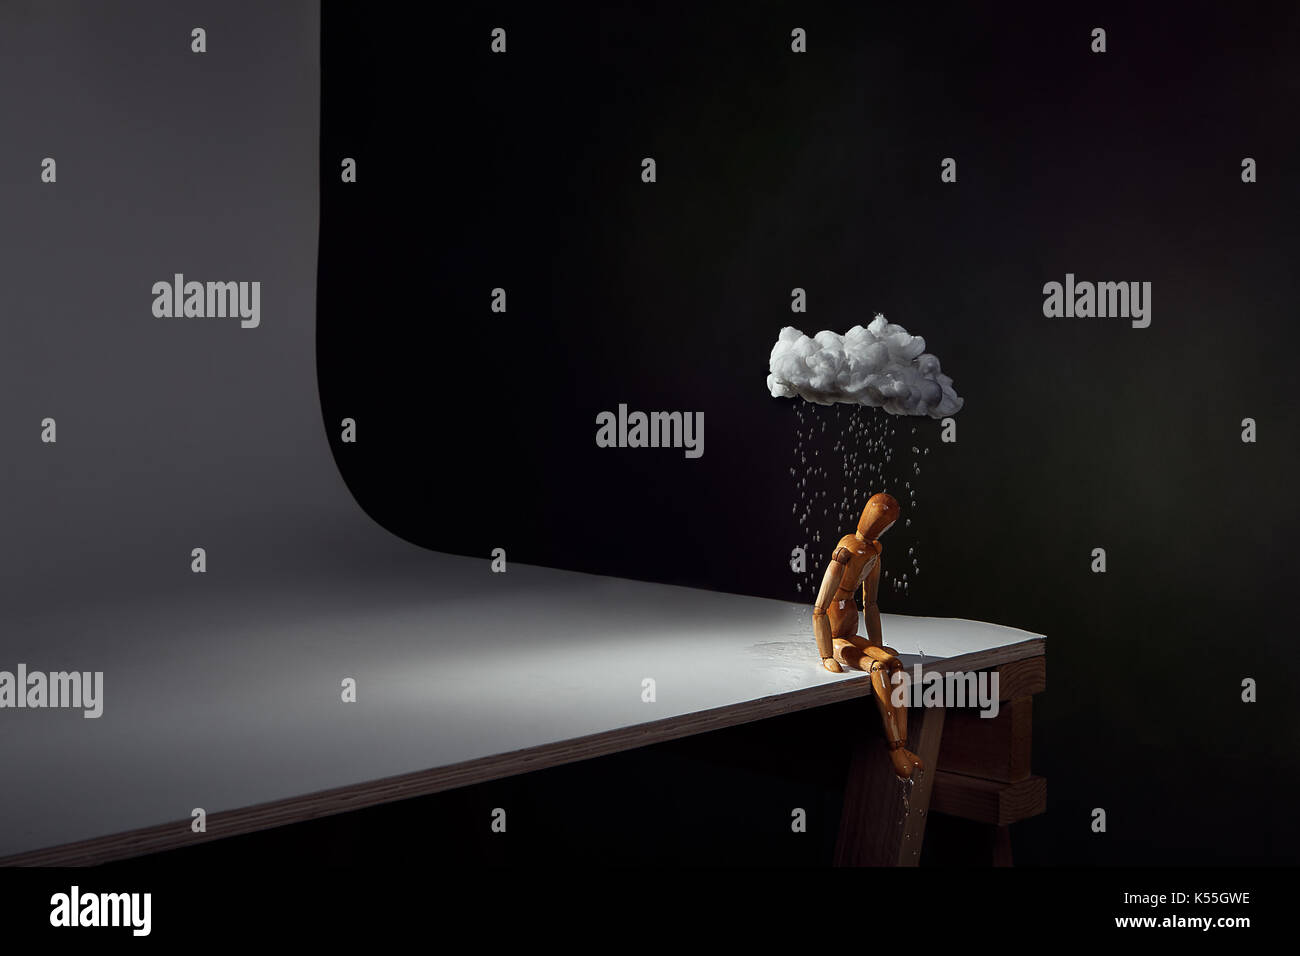 Personal Rain Cloud.  A lonely man sits under a small rain cloud, feeling sad, left out, ignored.  Having a bad day.  Conceptual studio shot. - Stock Image